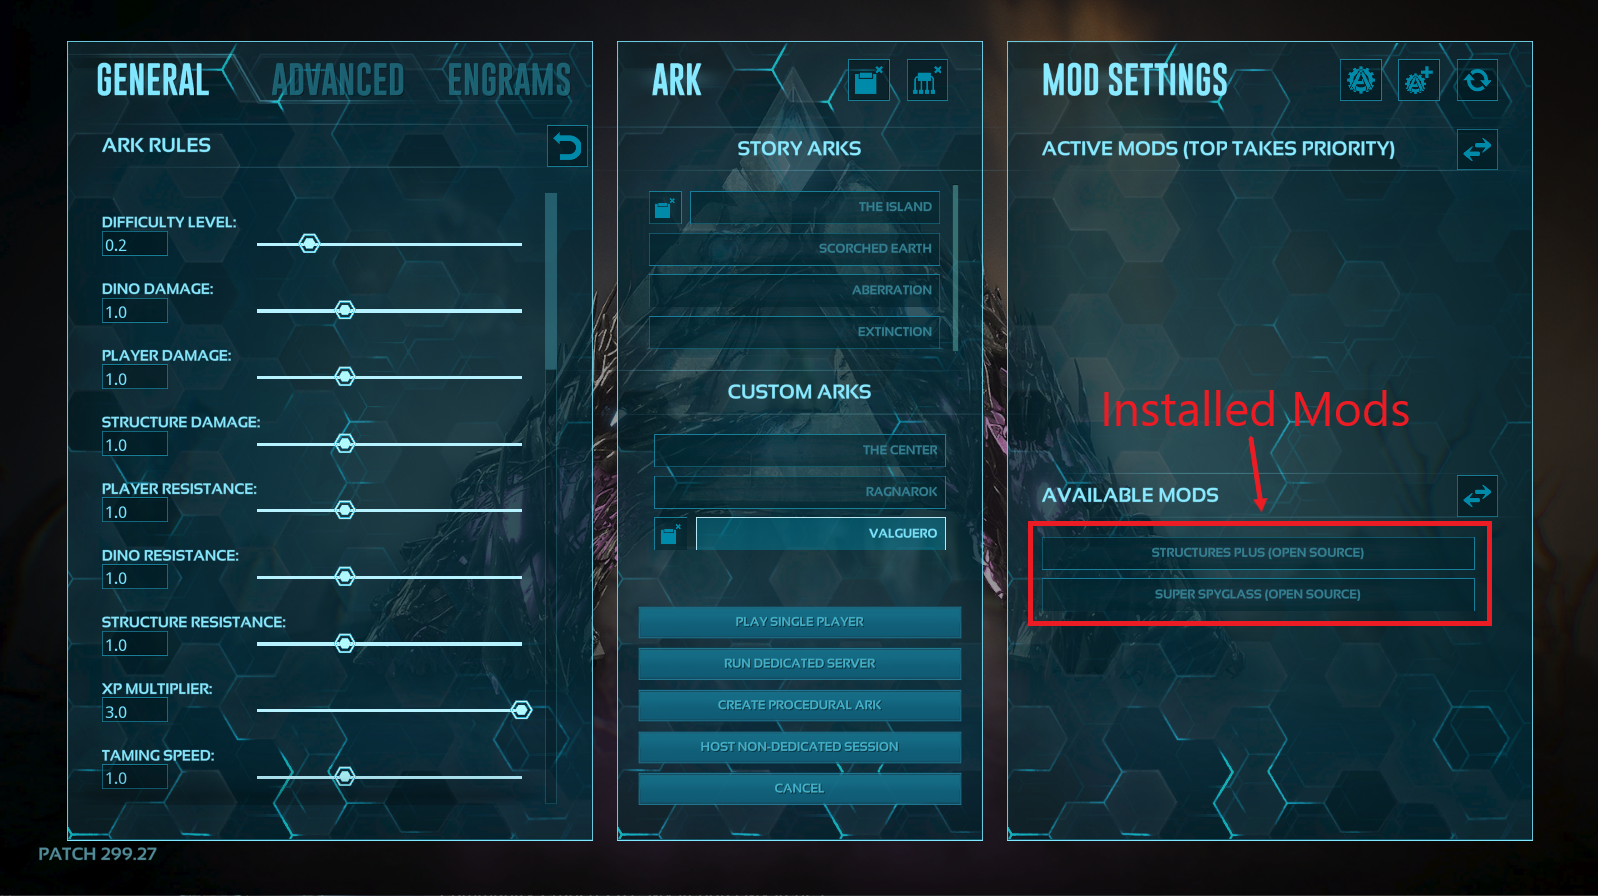 A view of the control panel for single player games in ark